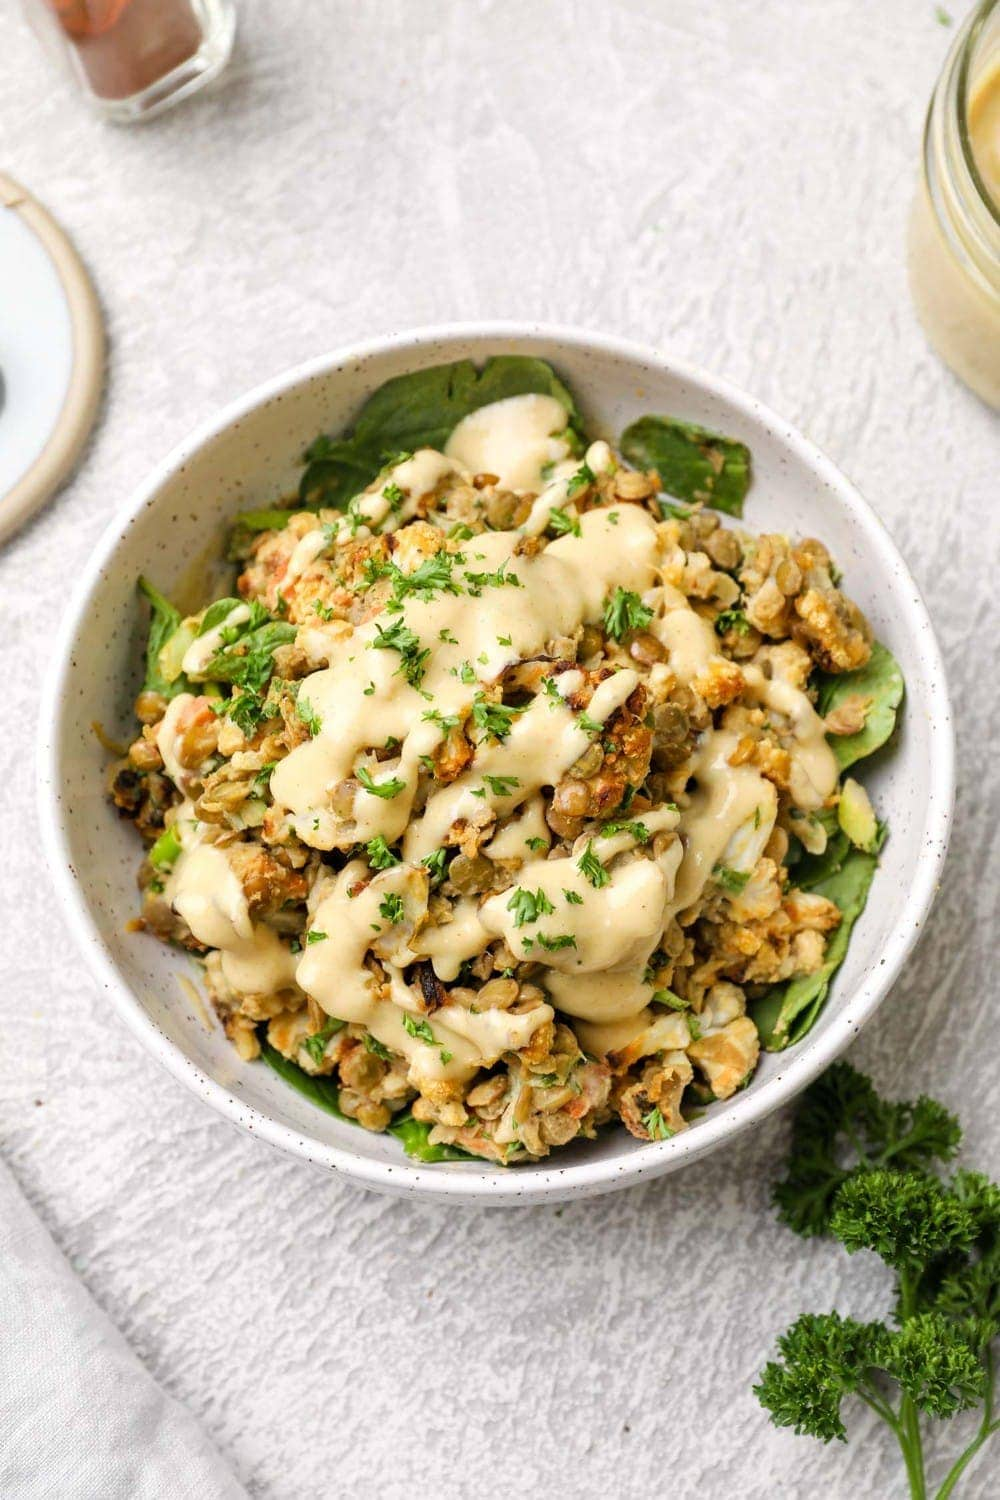 Cauliflower Lentil Salad with maple tahini dressing and parsley.